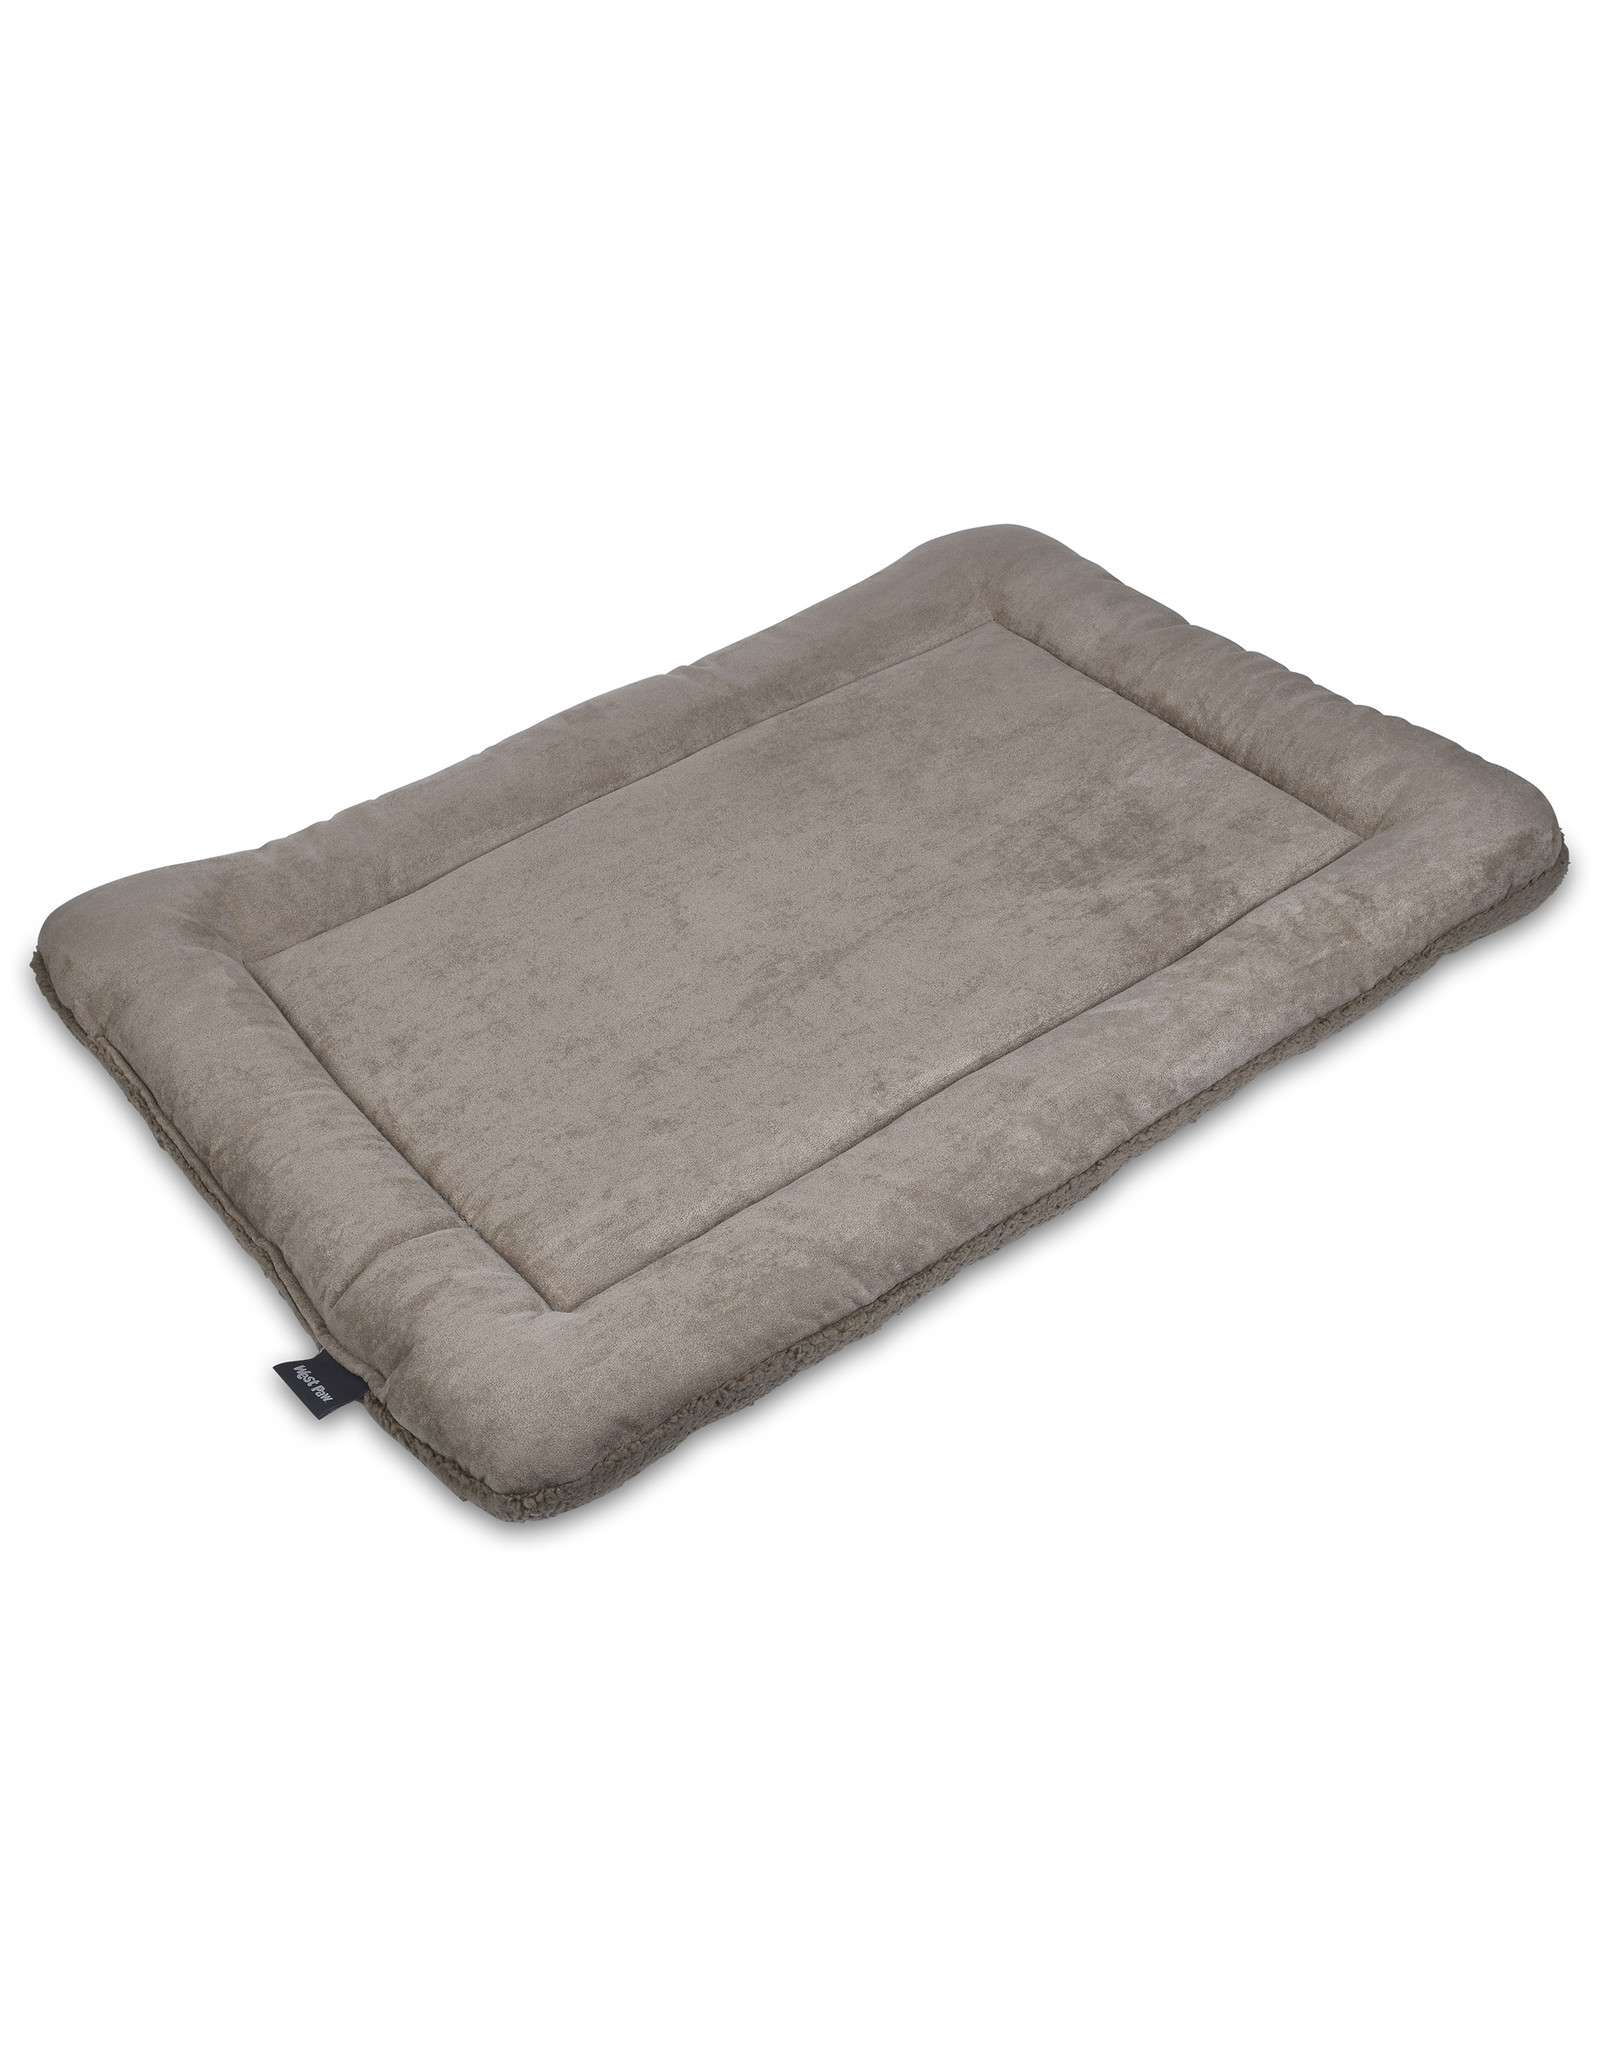 West Paw Designs Westpaw: Big Sky Nap Medium Oatmeal